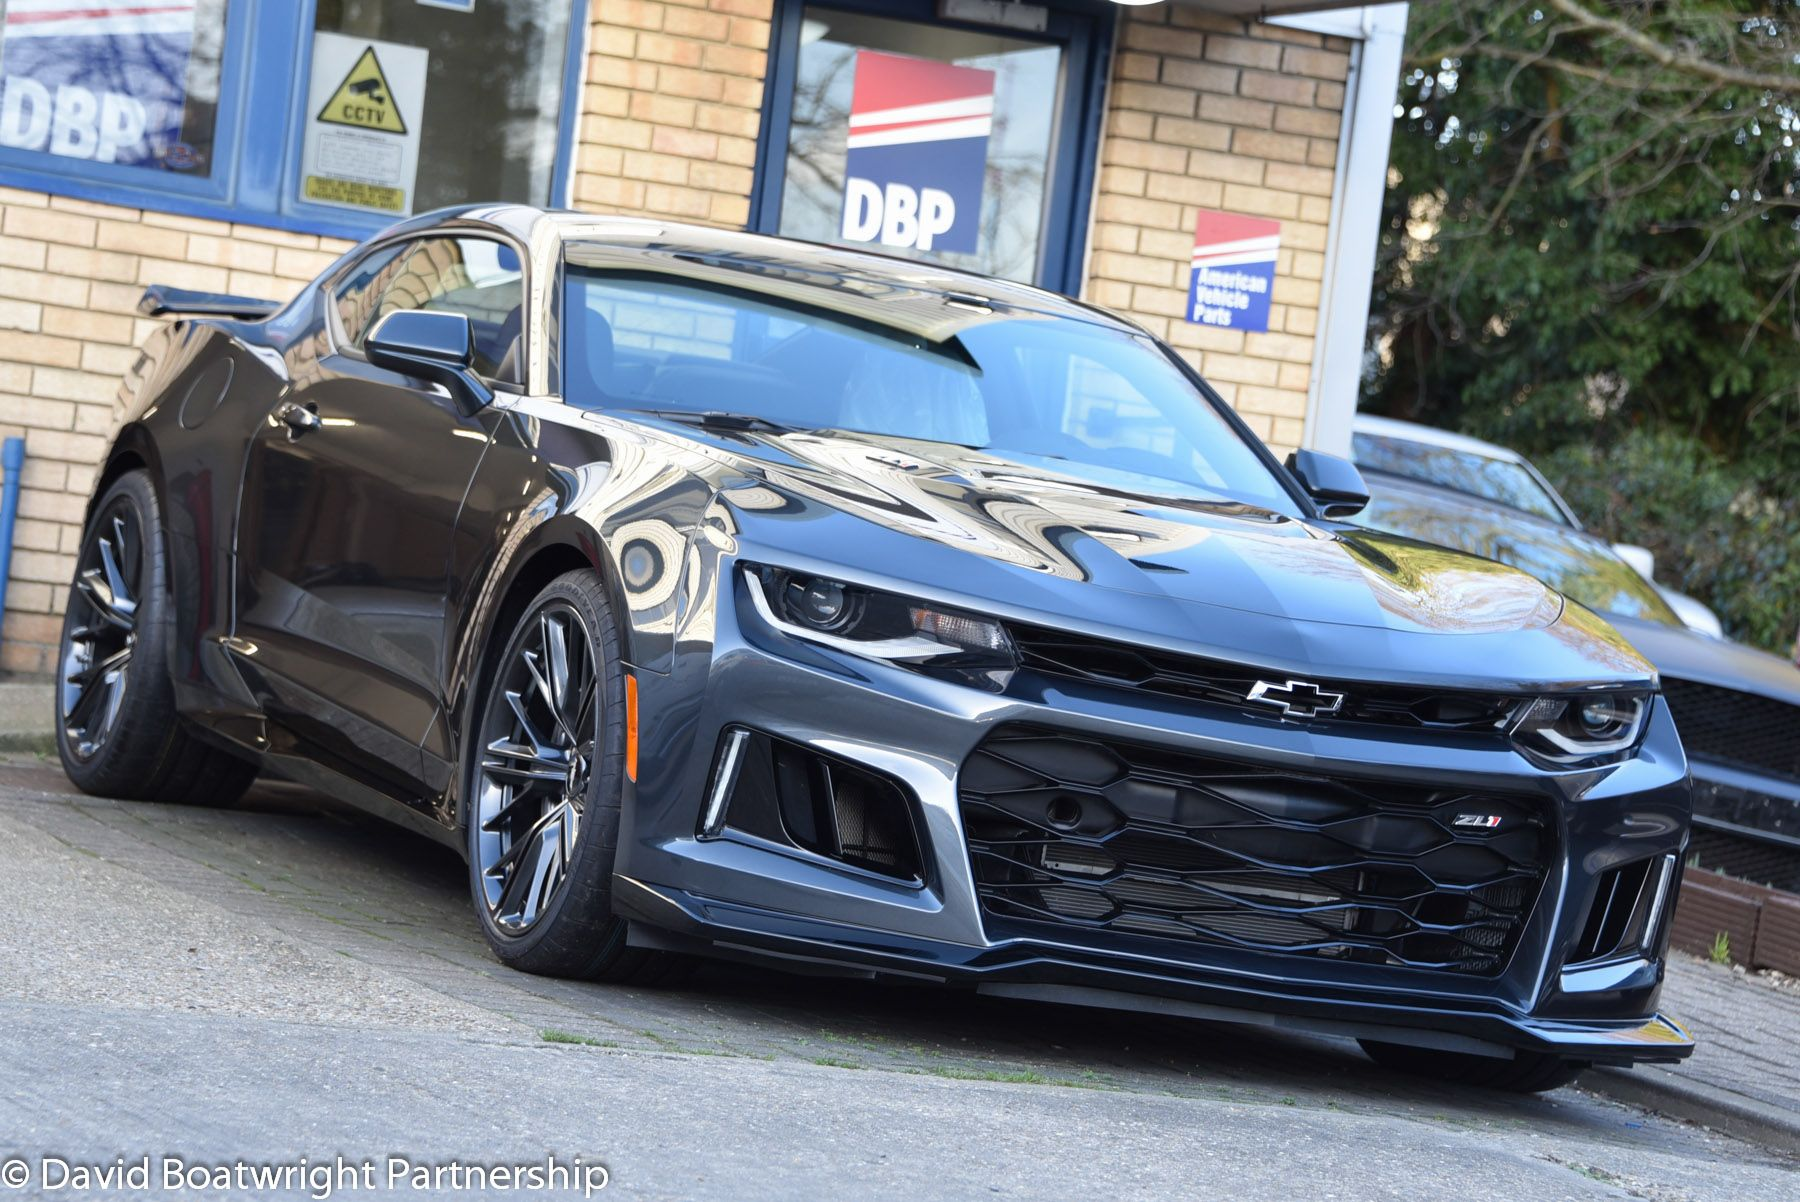 New Chevrolet Camaro Zl1 Supercharged For Sale In The Uk Camaro Chevrolet Camaro Zl1 Camaro Zl1